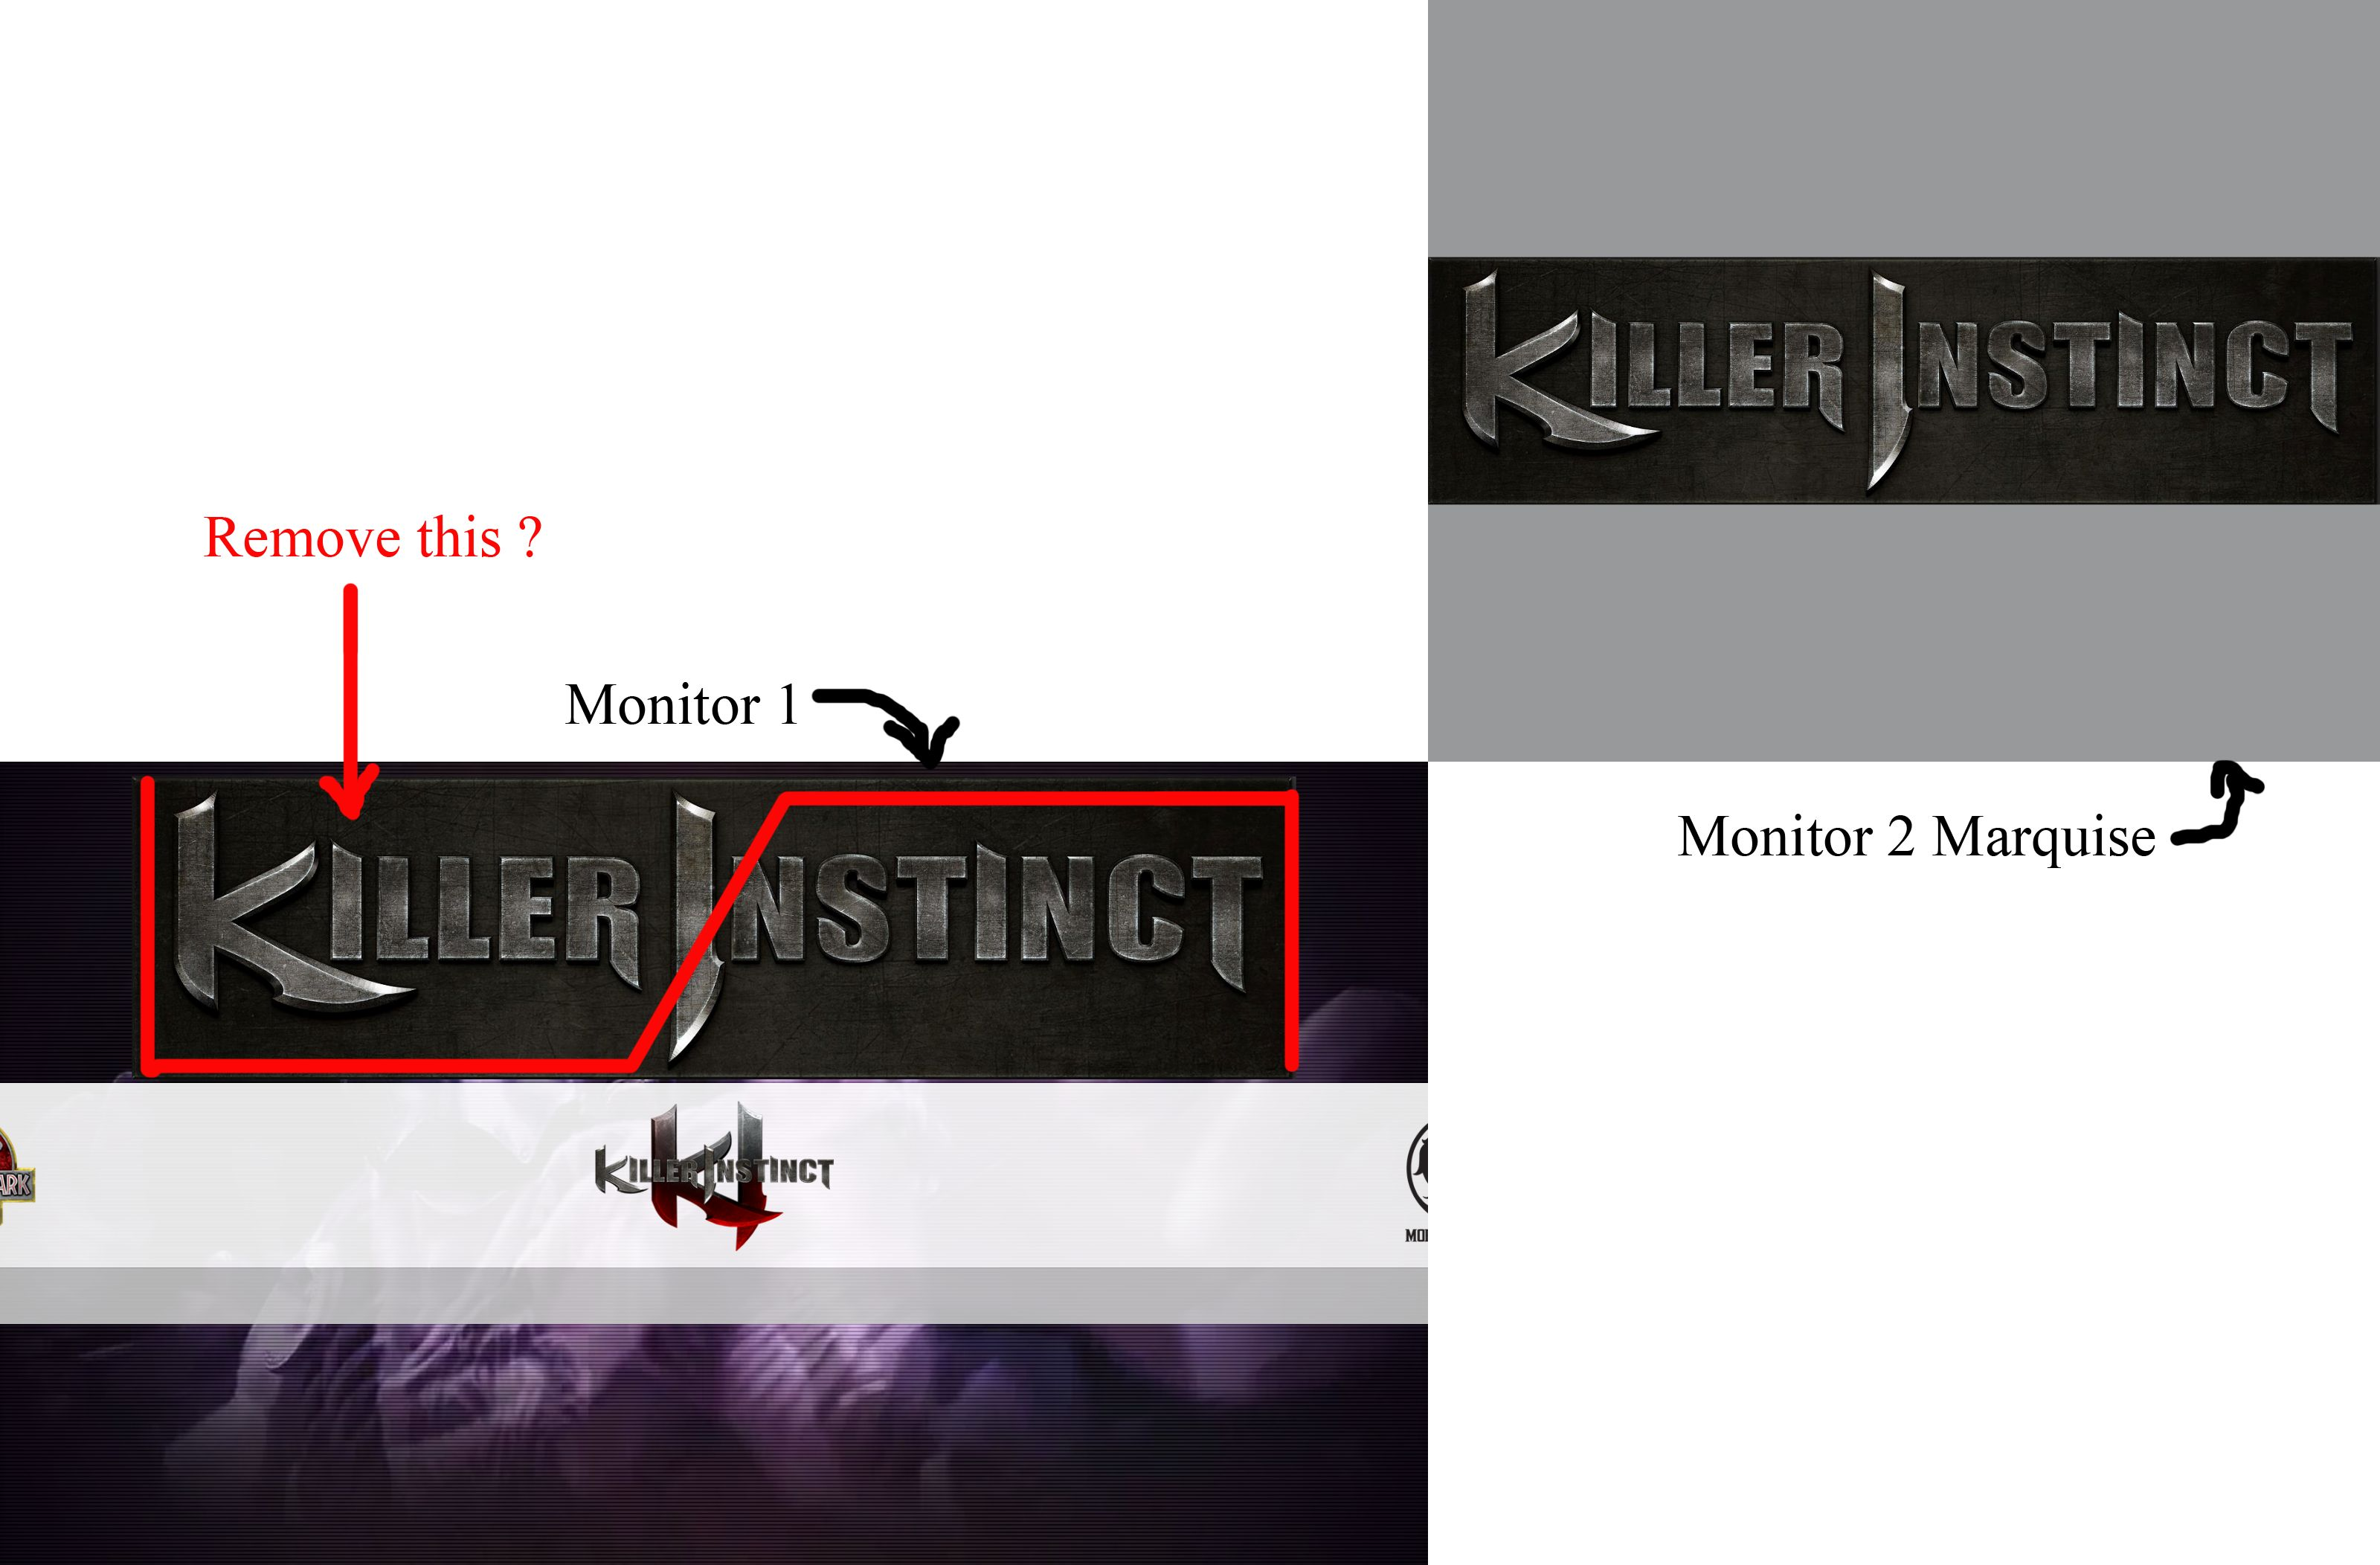 How to remove a banner from the screen